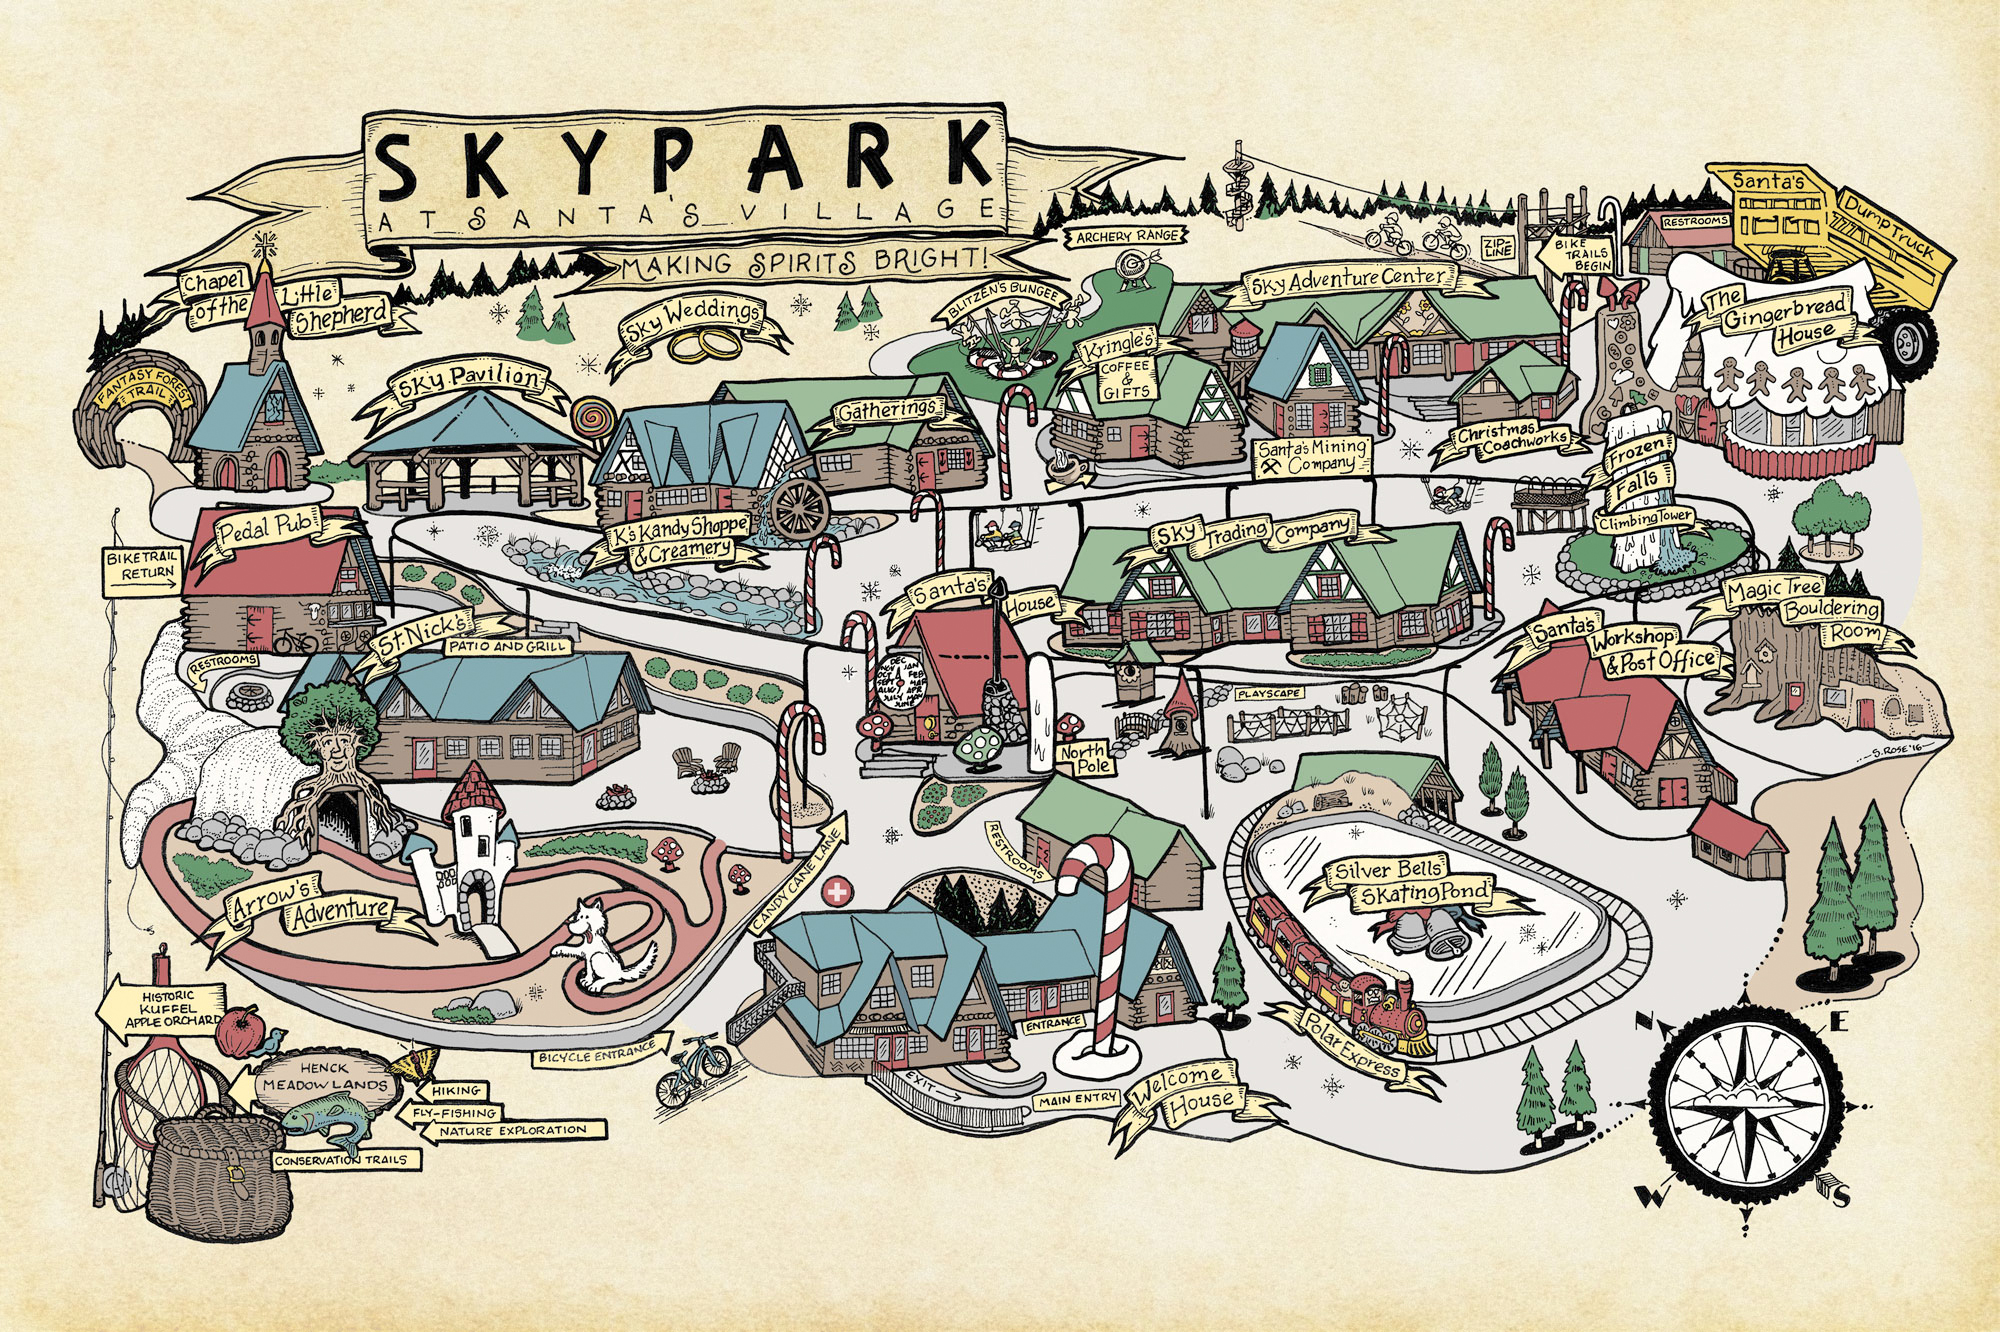 A map of SkyPark as seen on the Santa's Village website.